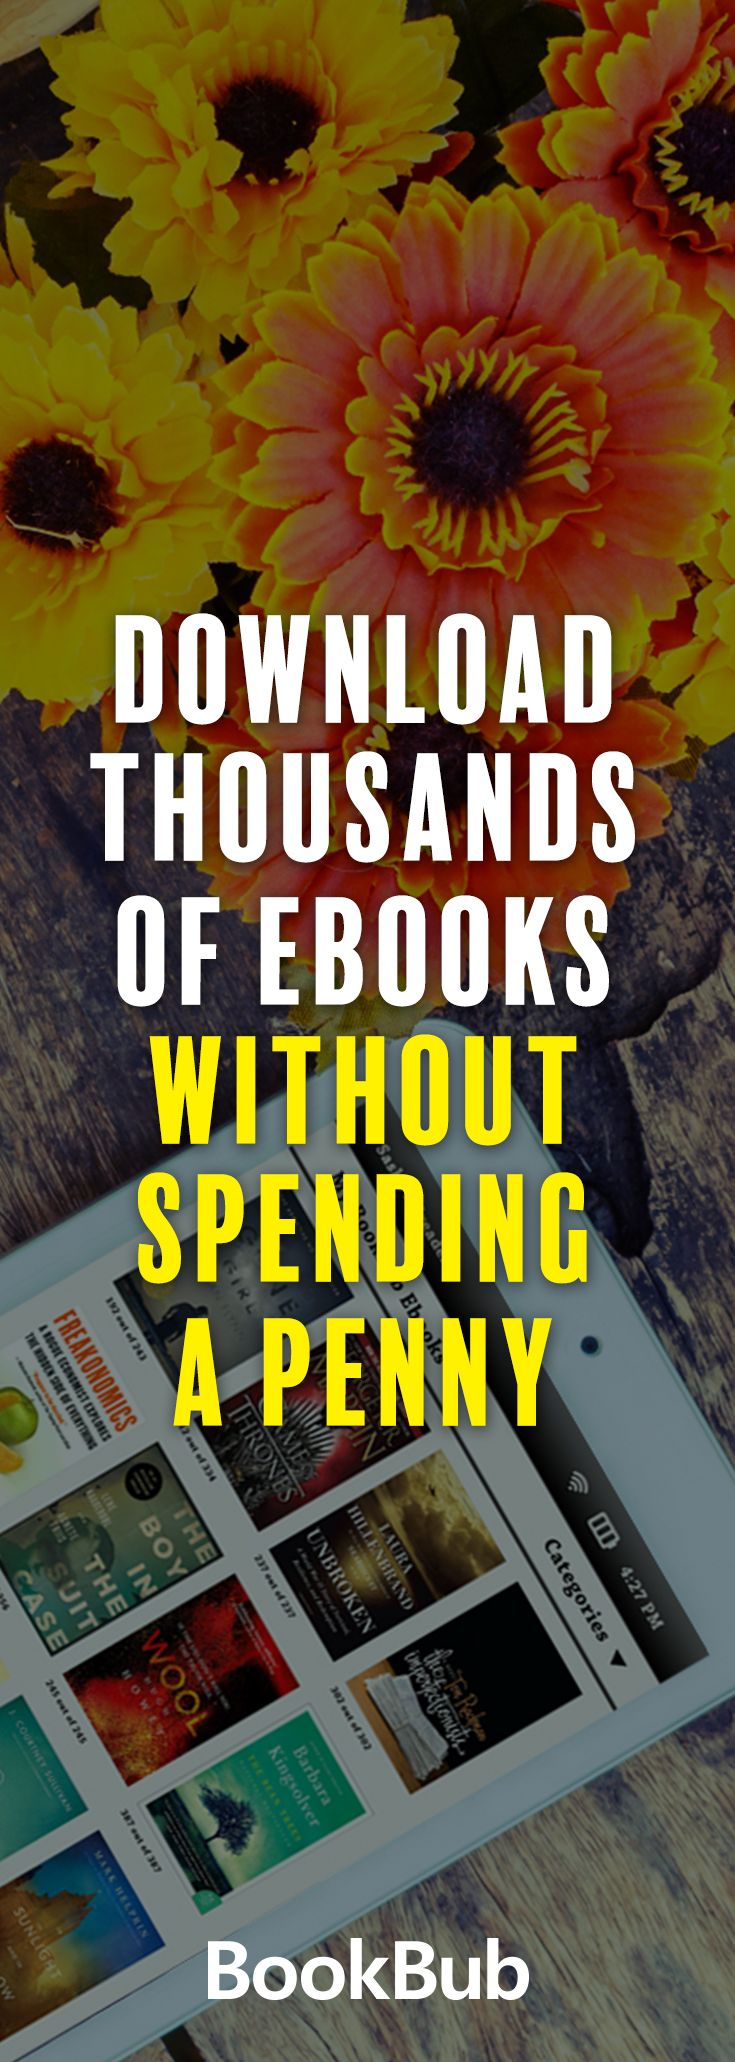 The Secret You Need To Know About Ebooks